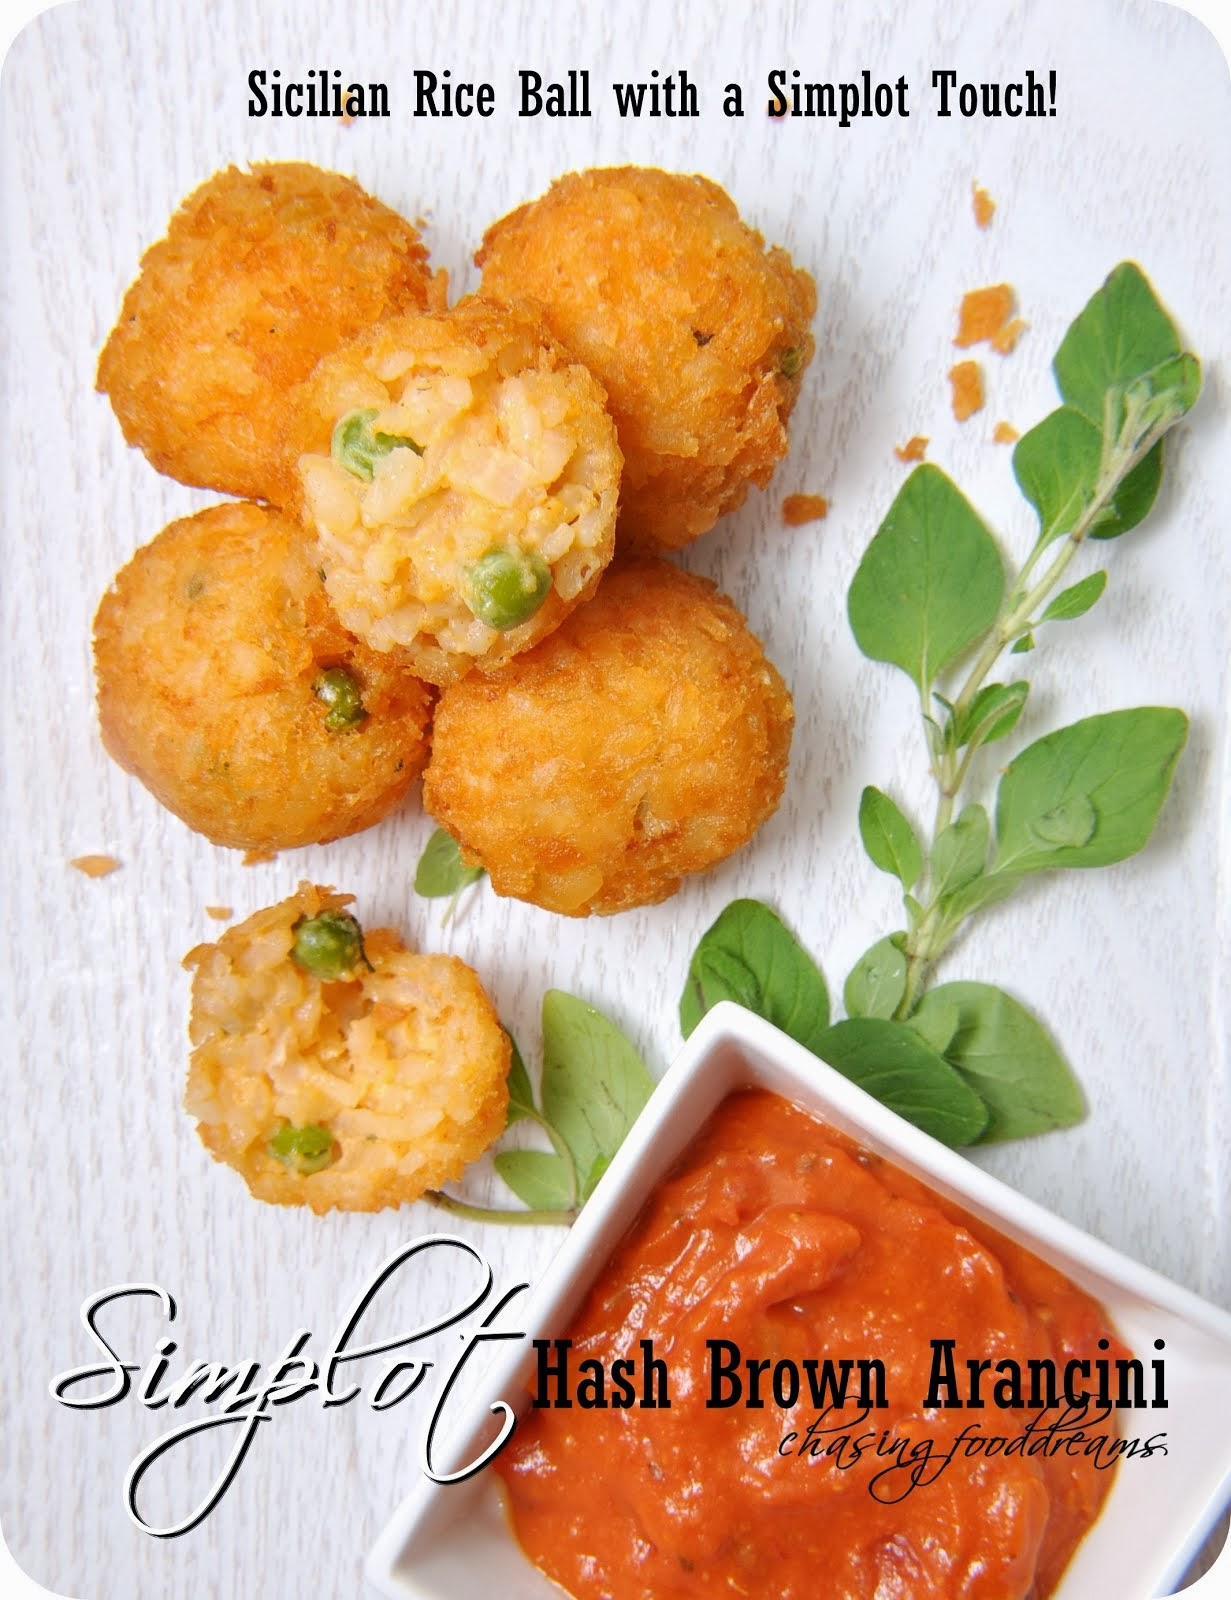 Simplot Hash Brown Arancini